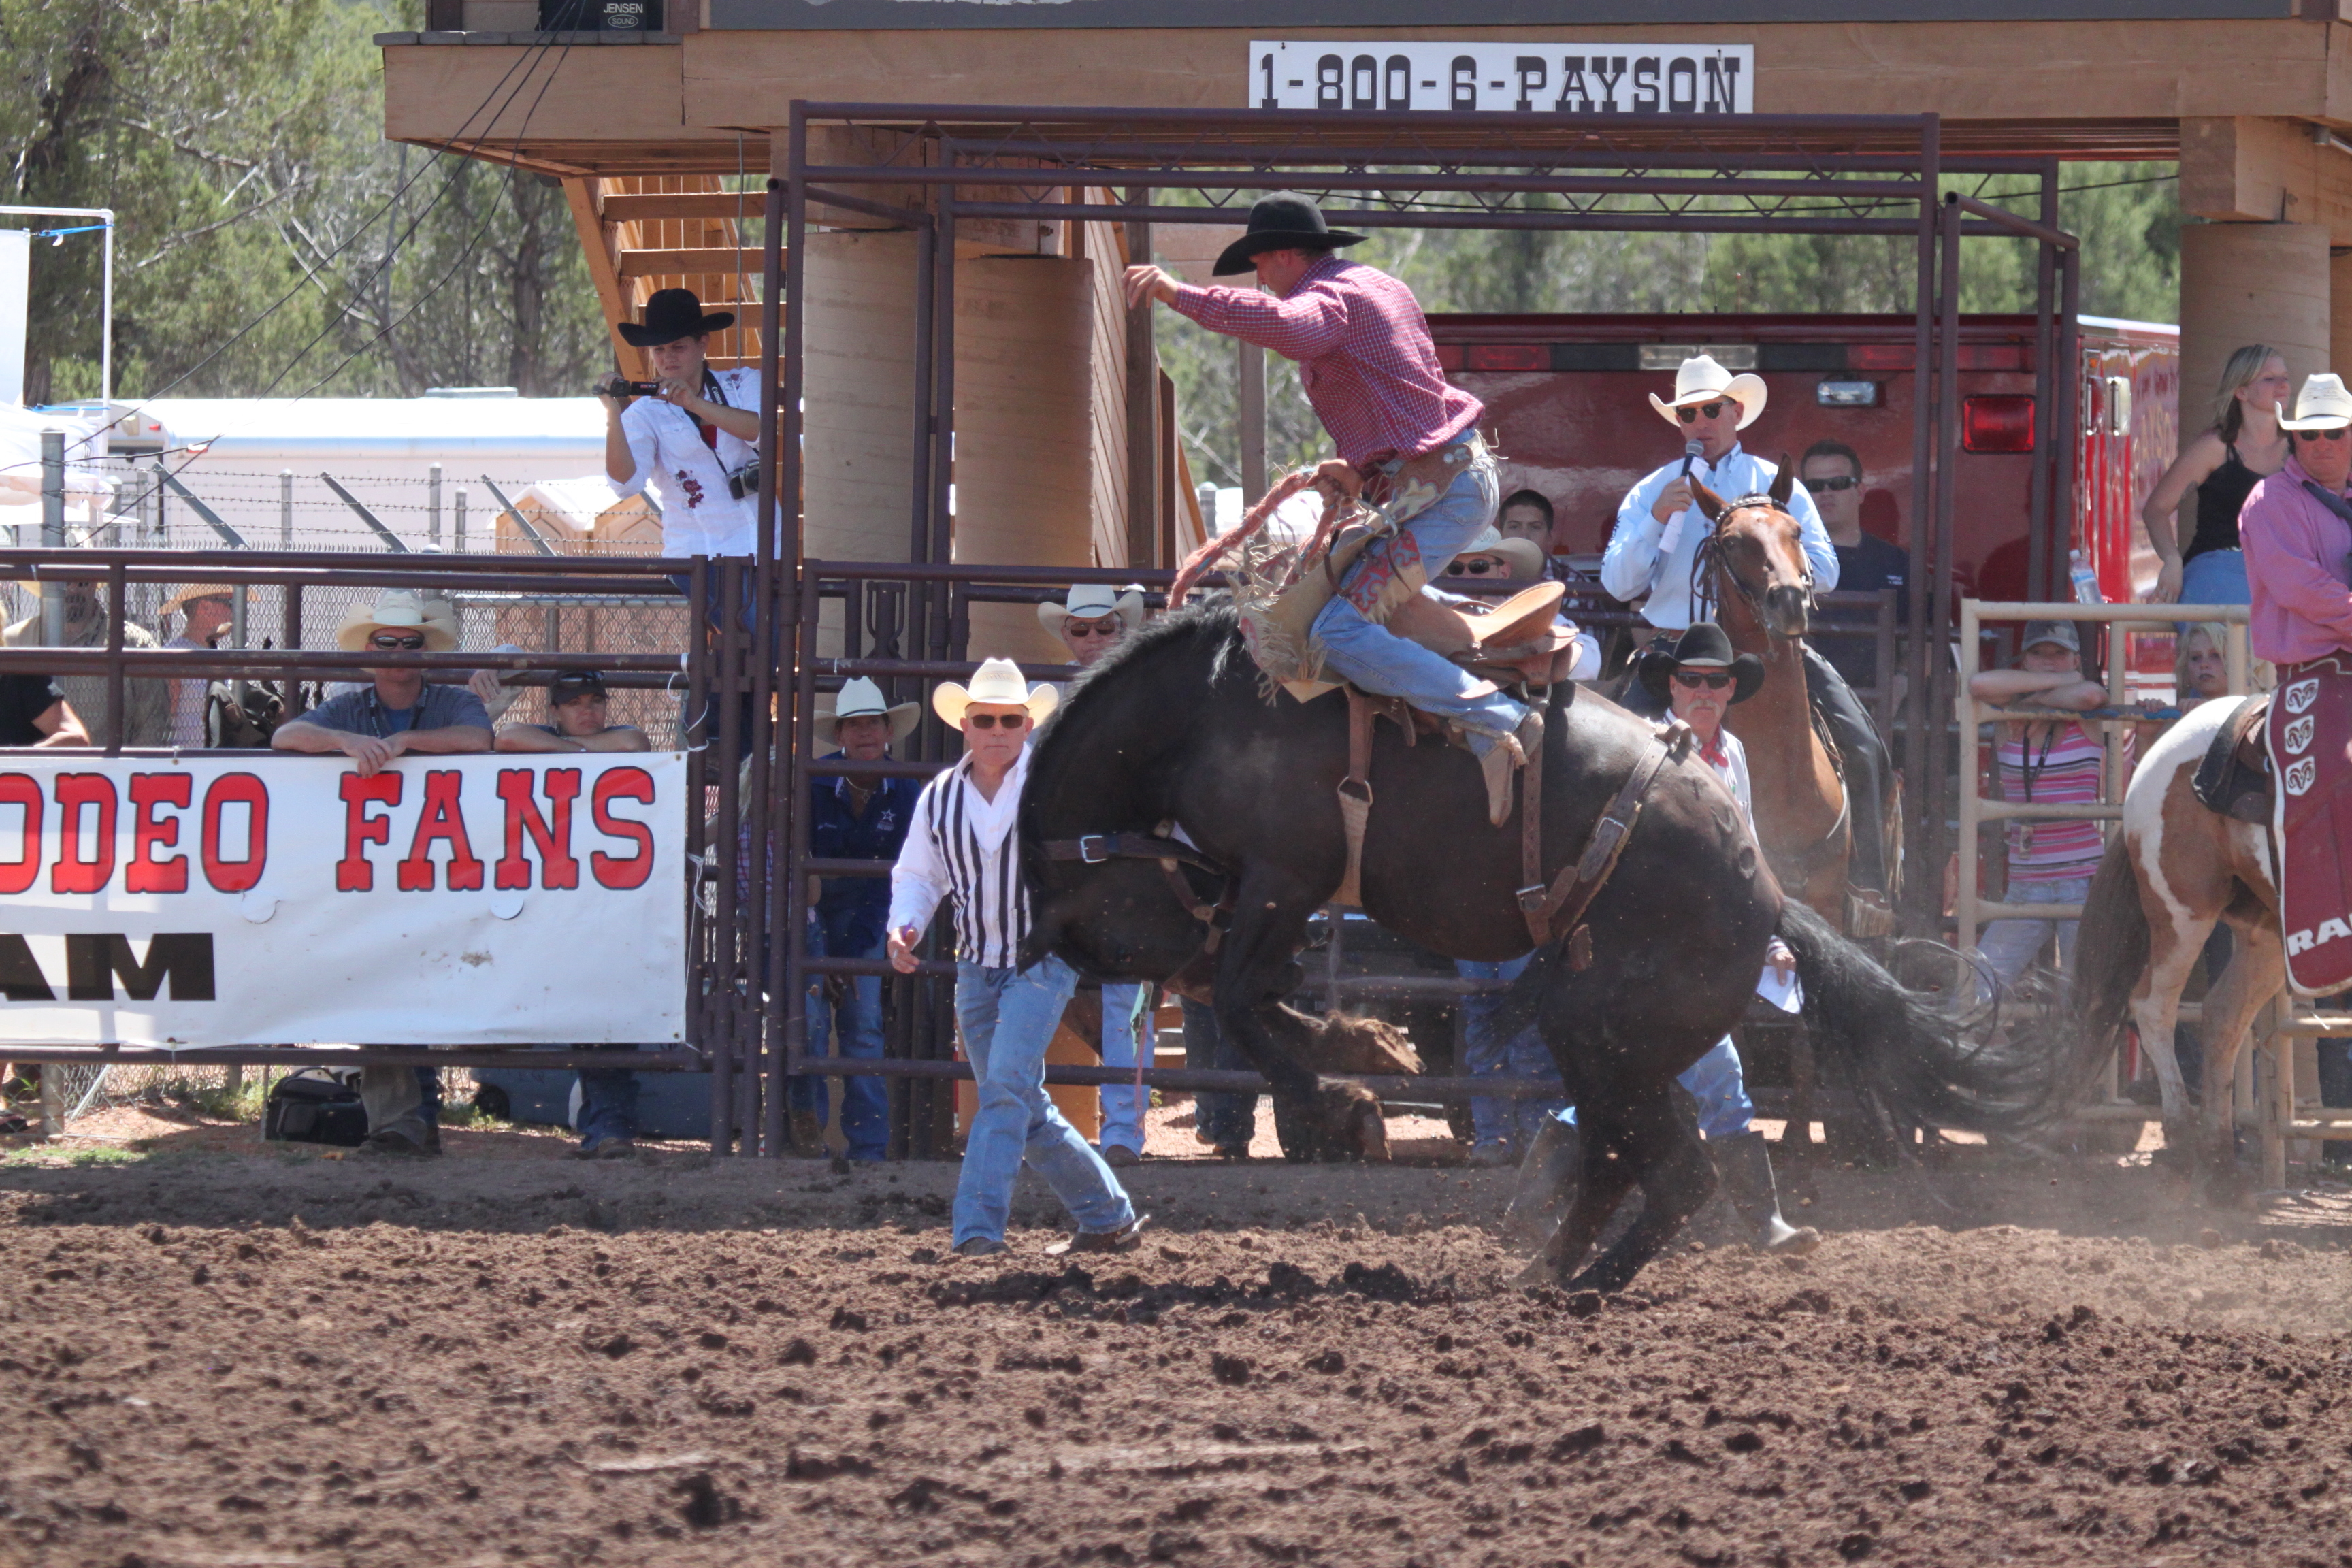 Payson_Rodeo_20020_(2).JPG